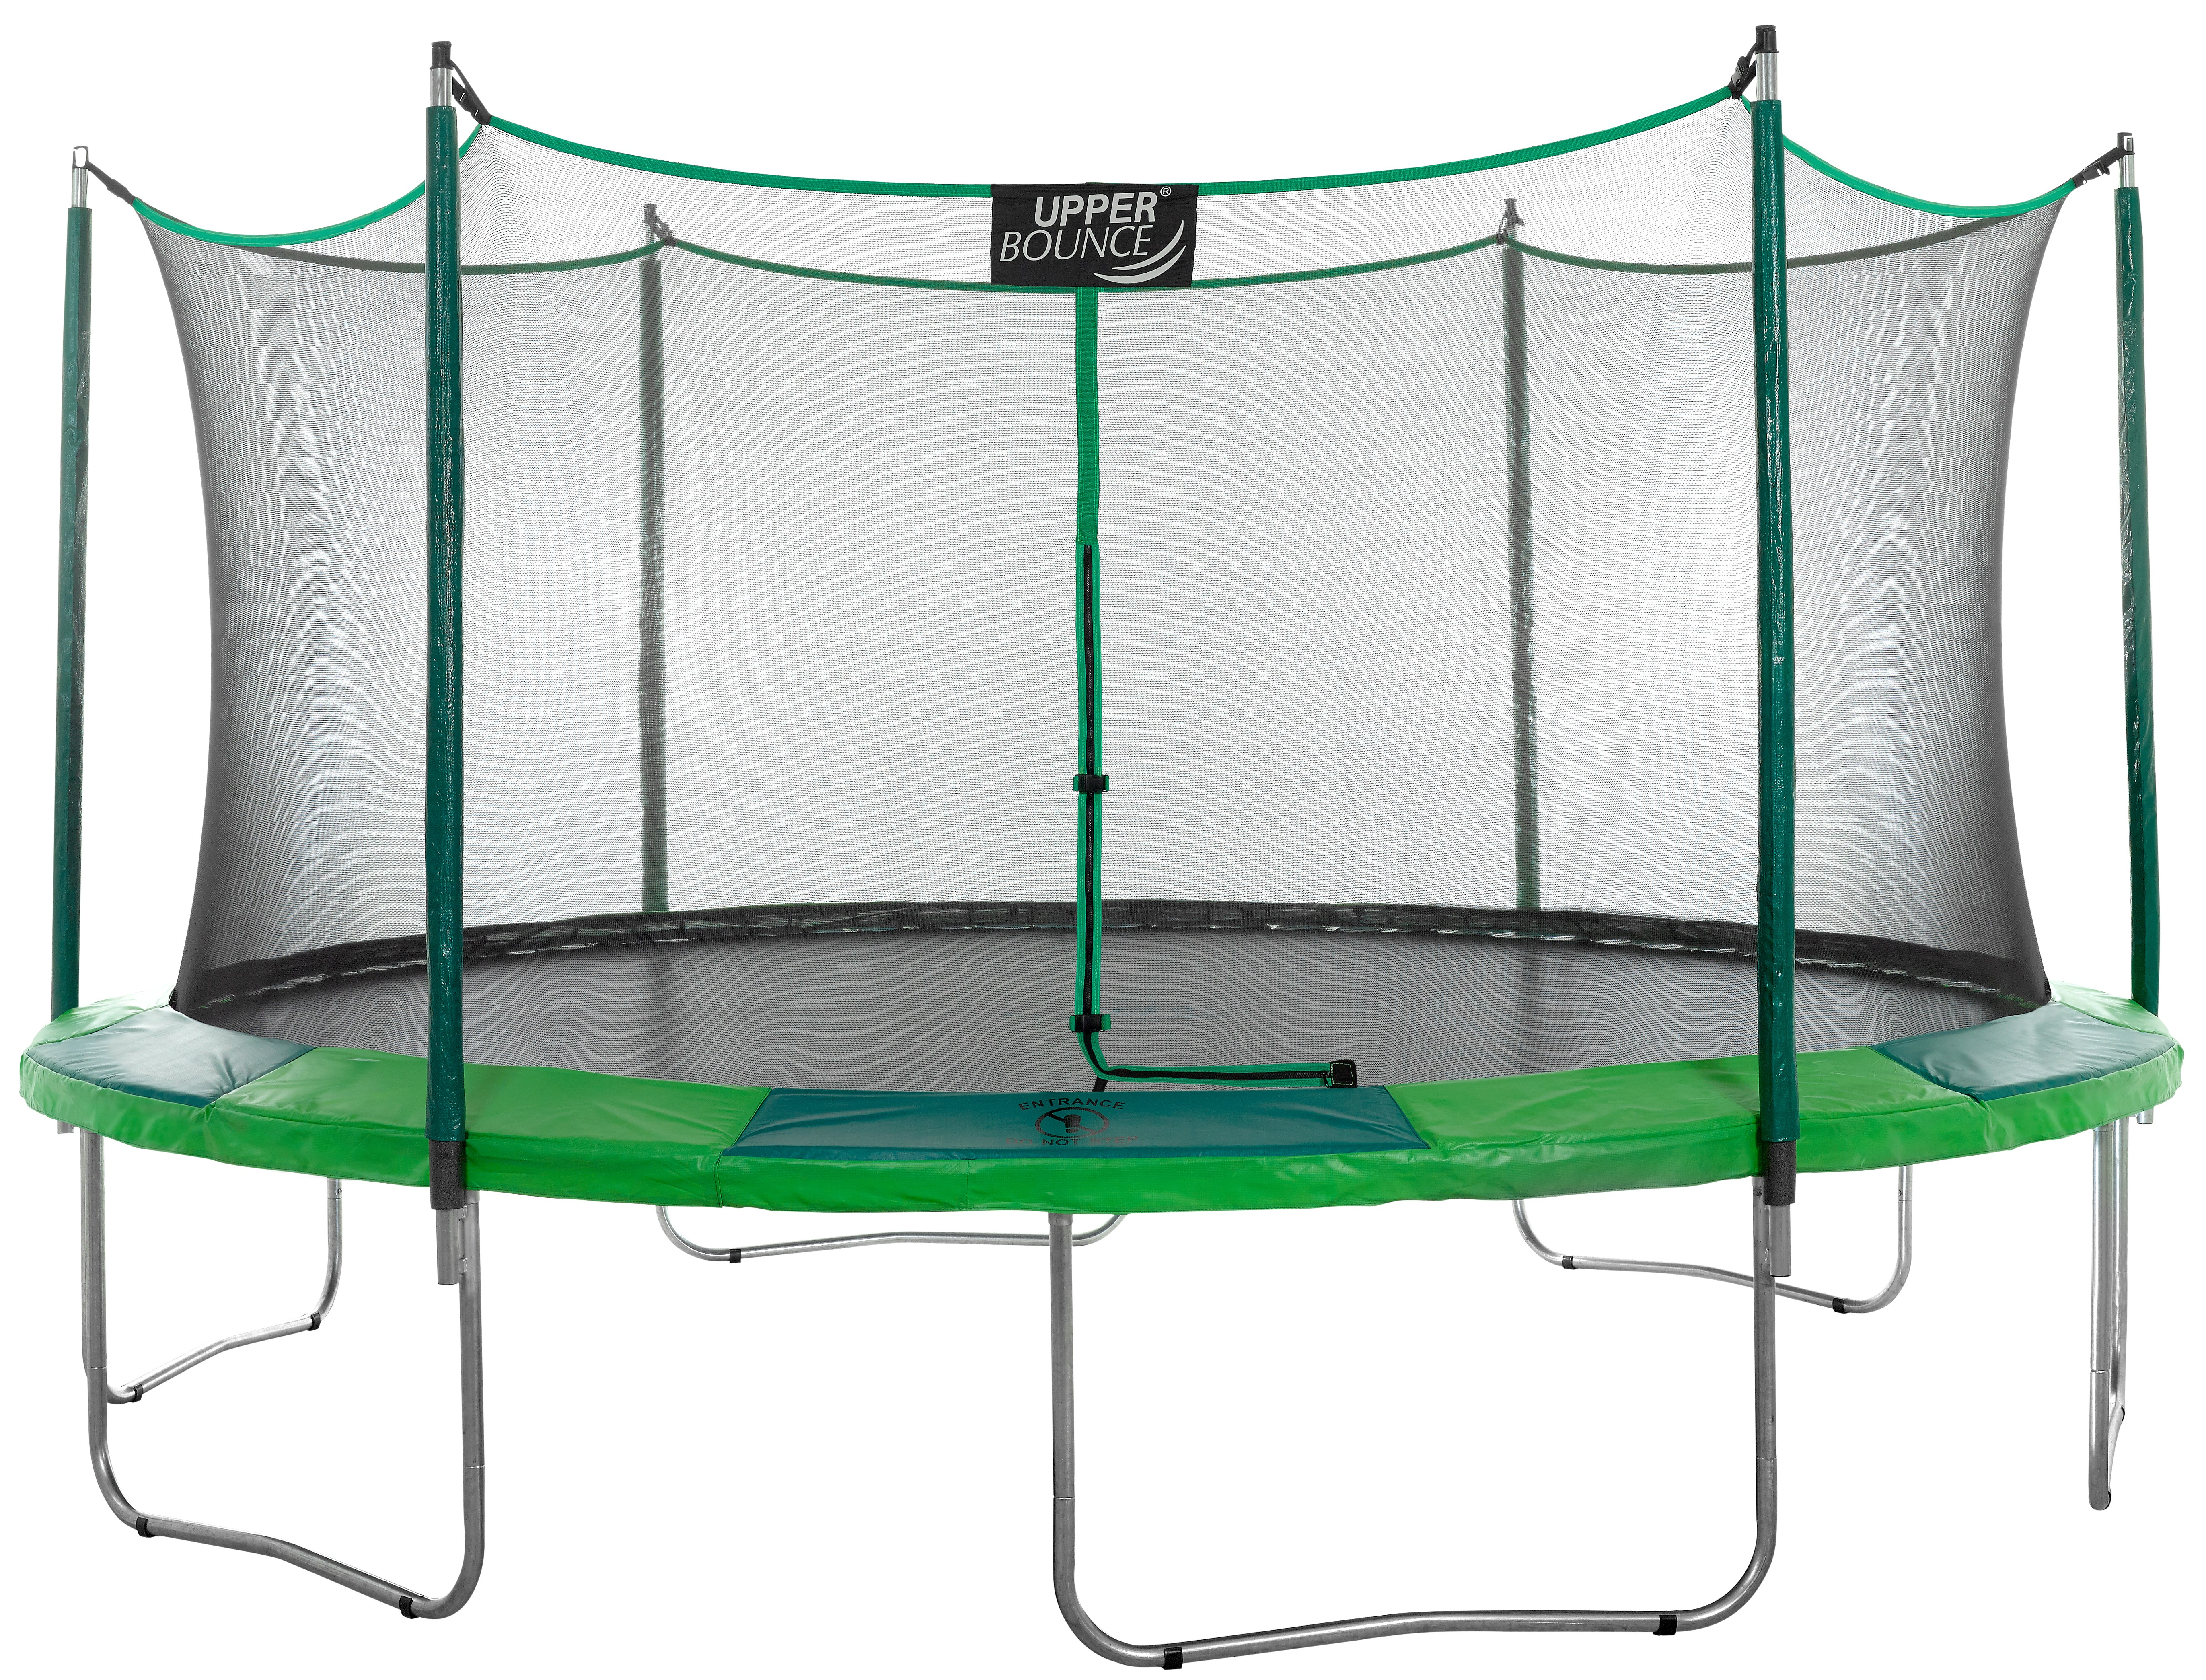 15Ft Large Trampoline and Enclosure Set | Garden & Outdoor Trampoline with Safety Net, Mat, Pad | Green